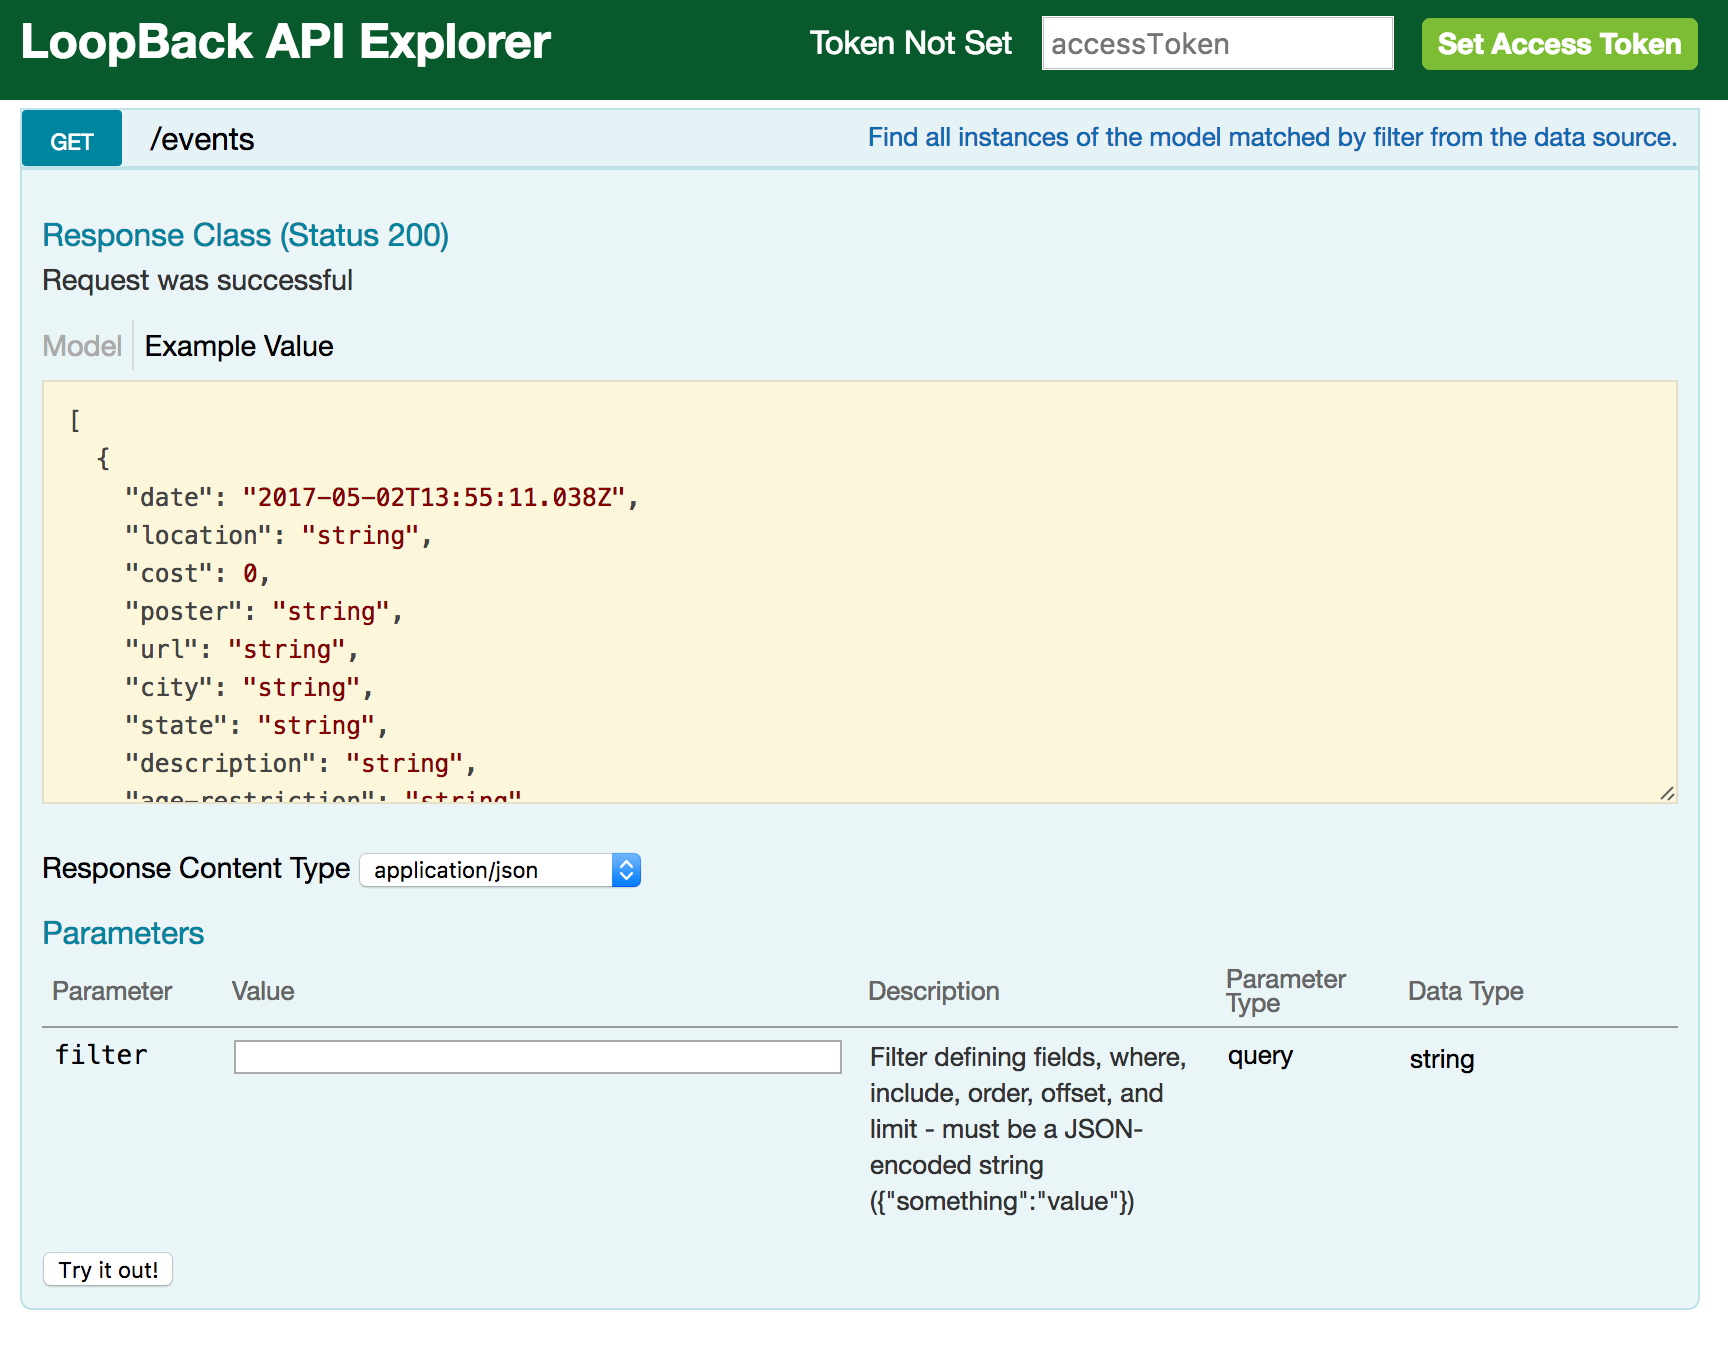 LoopBack API Explorer - GET request